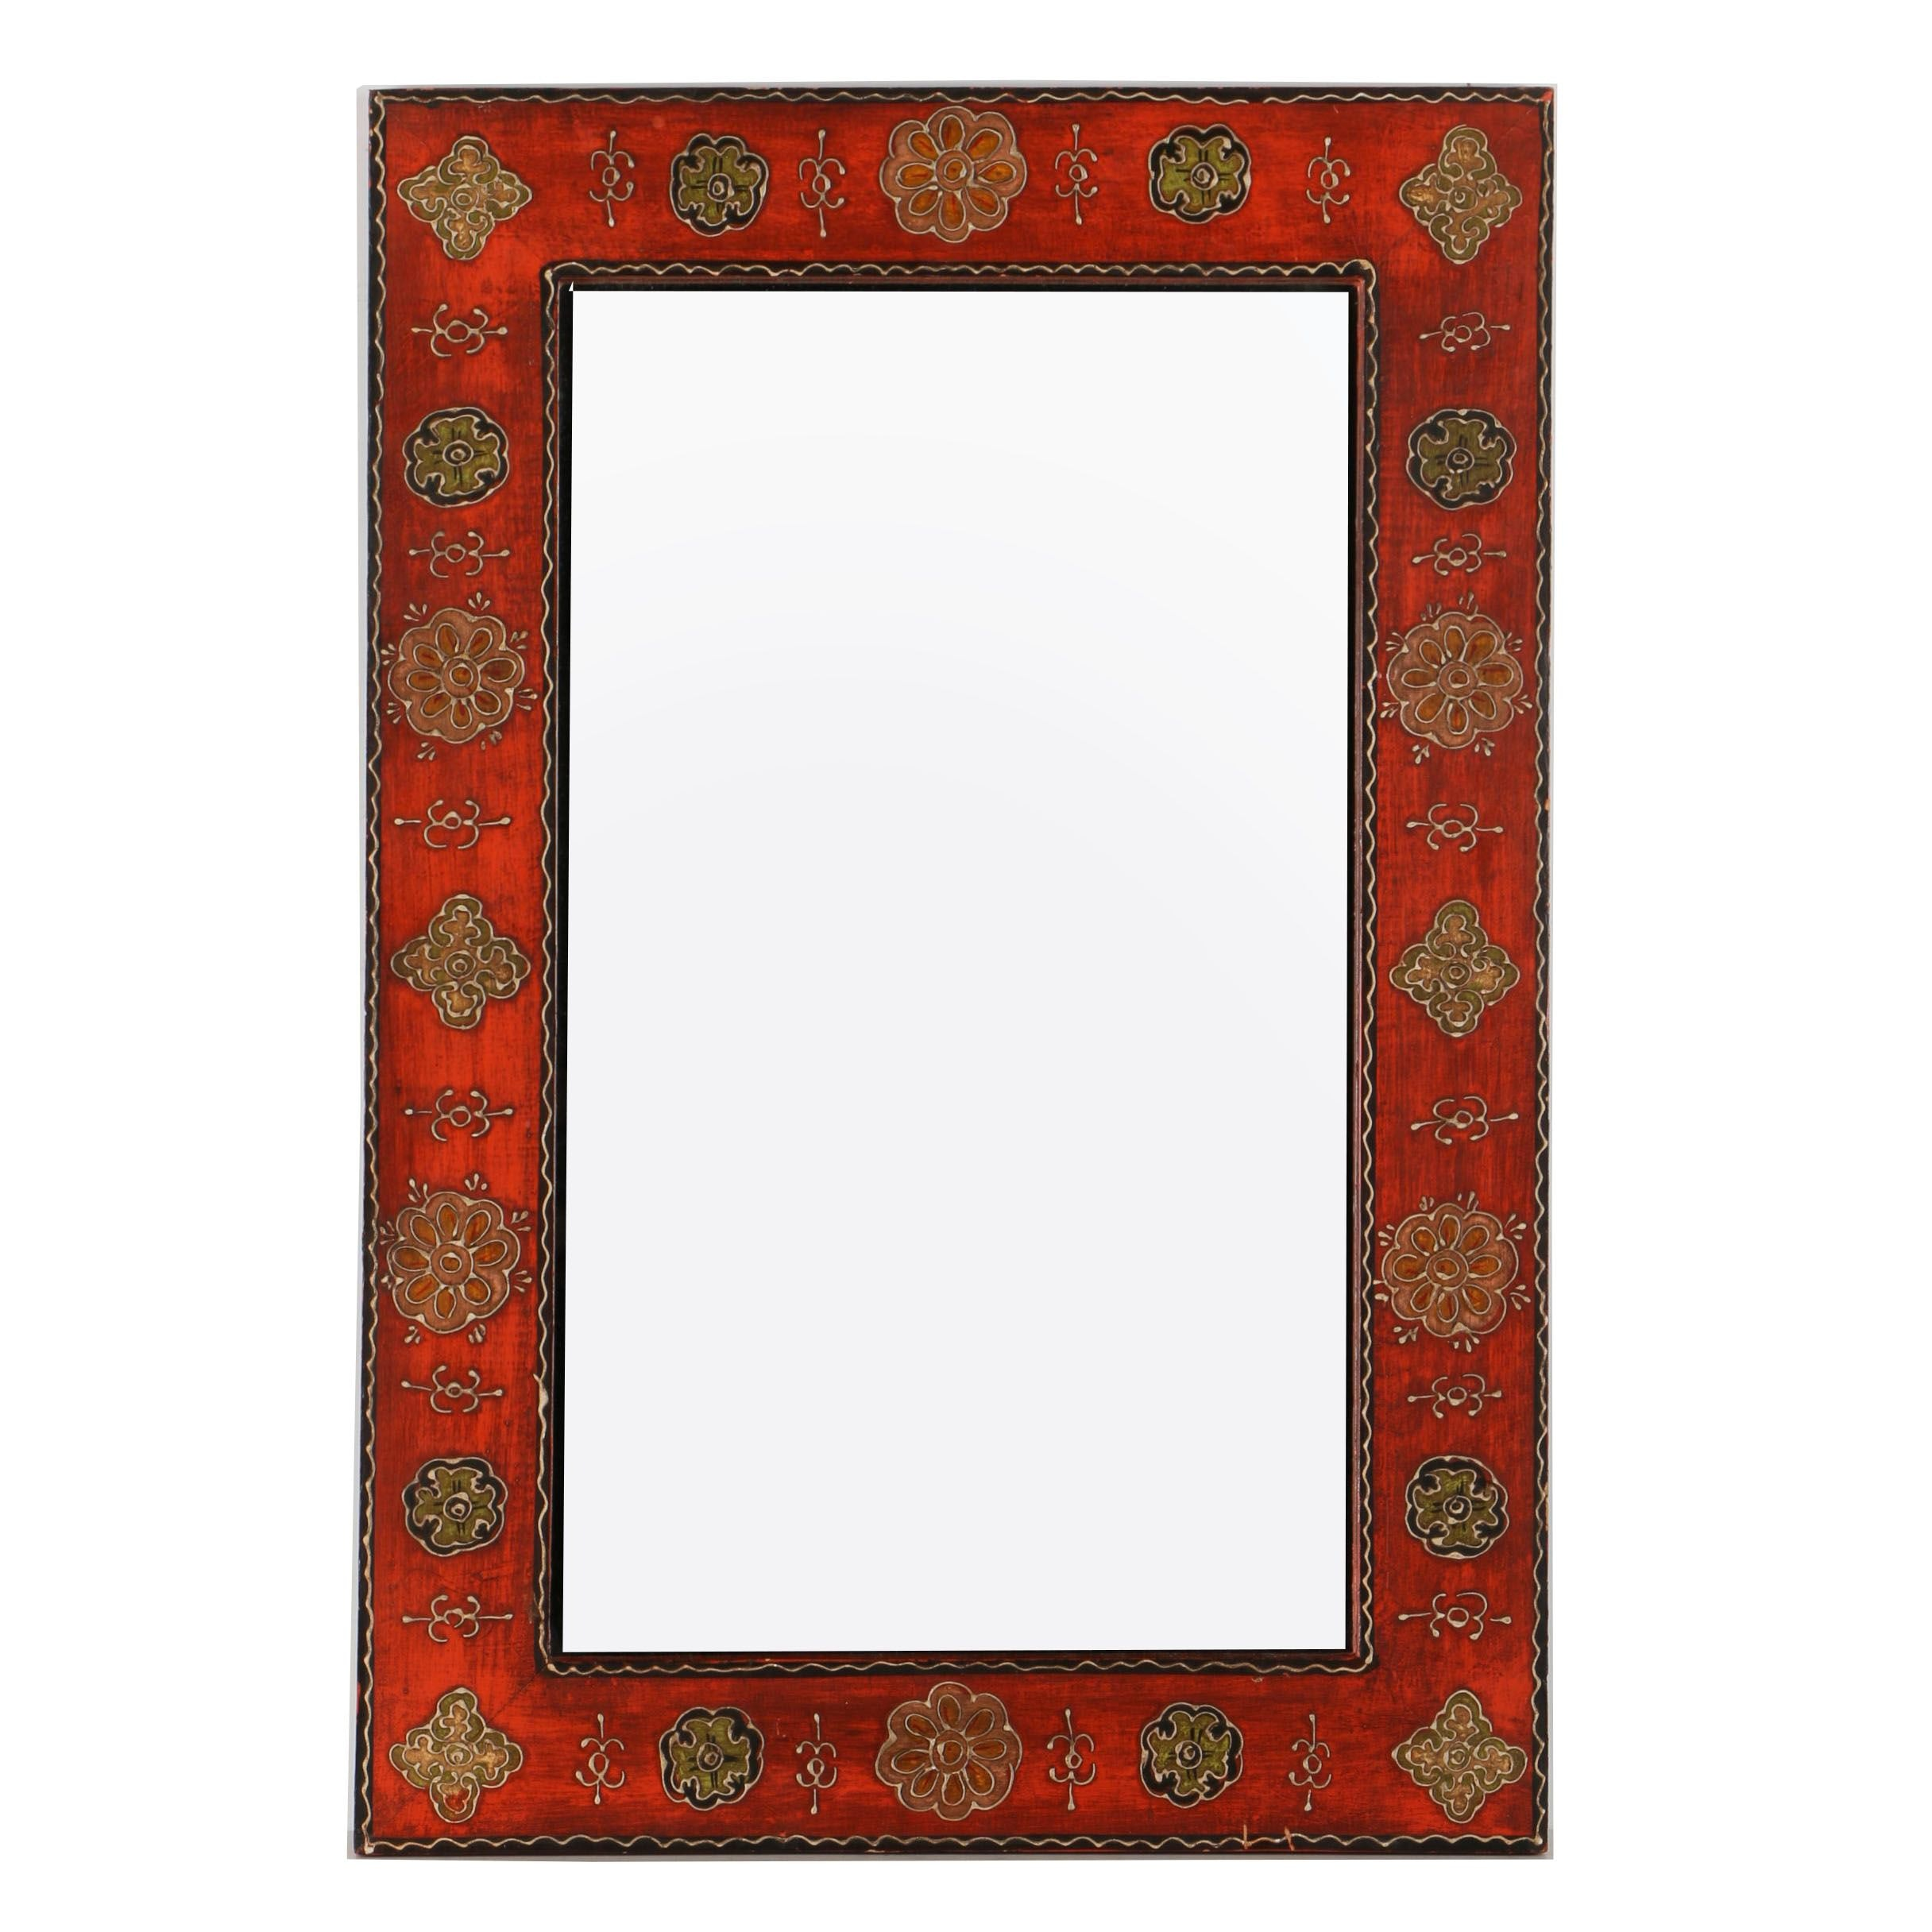 Hand Painted Wooden Wall Mirror